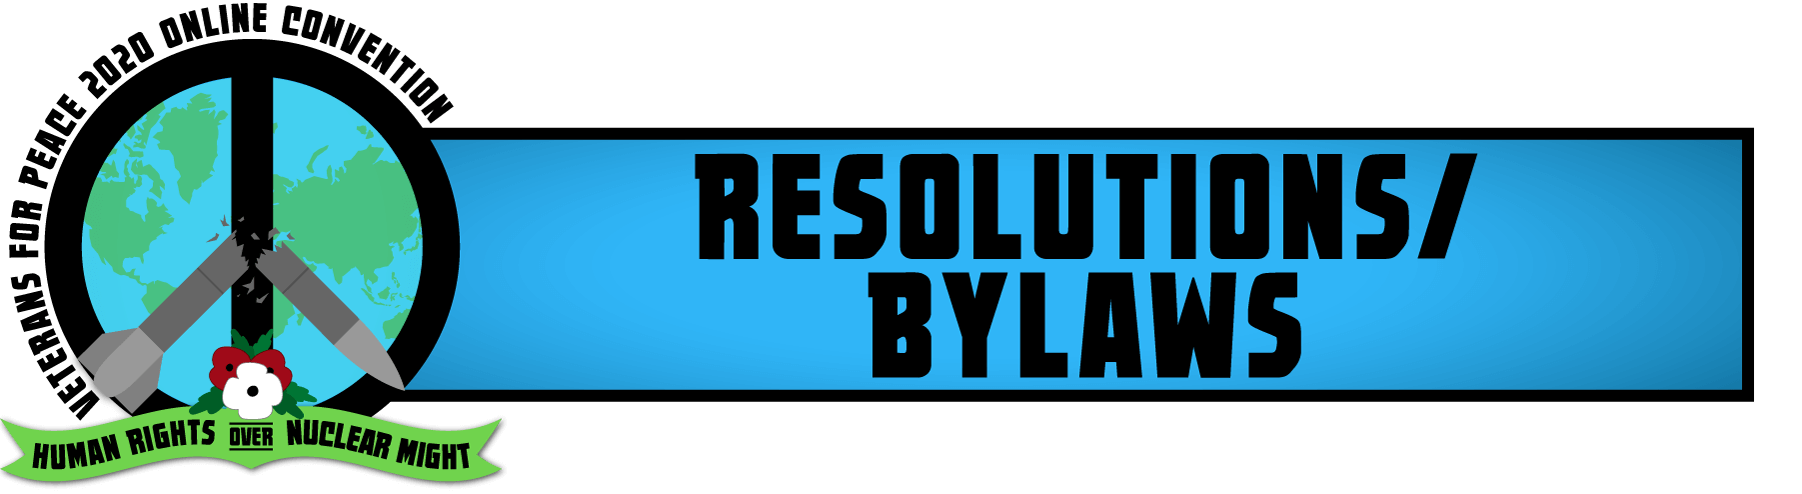 Resolutions and Bylaws